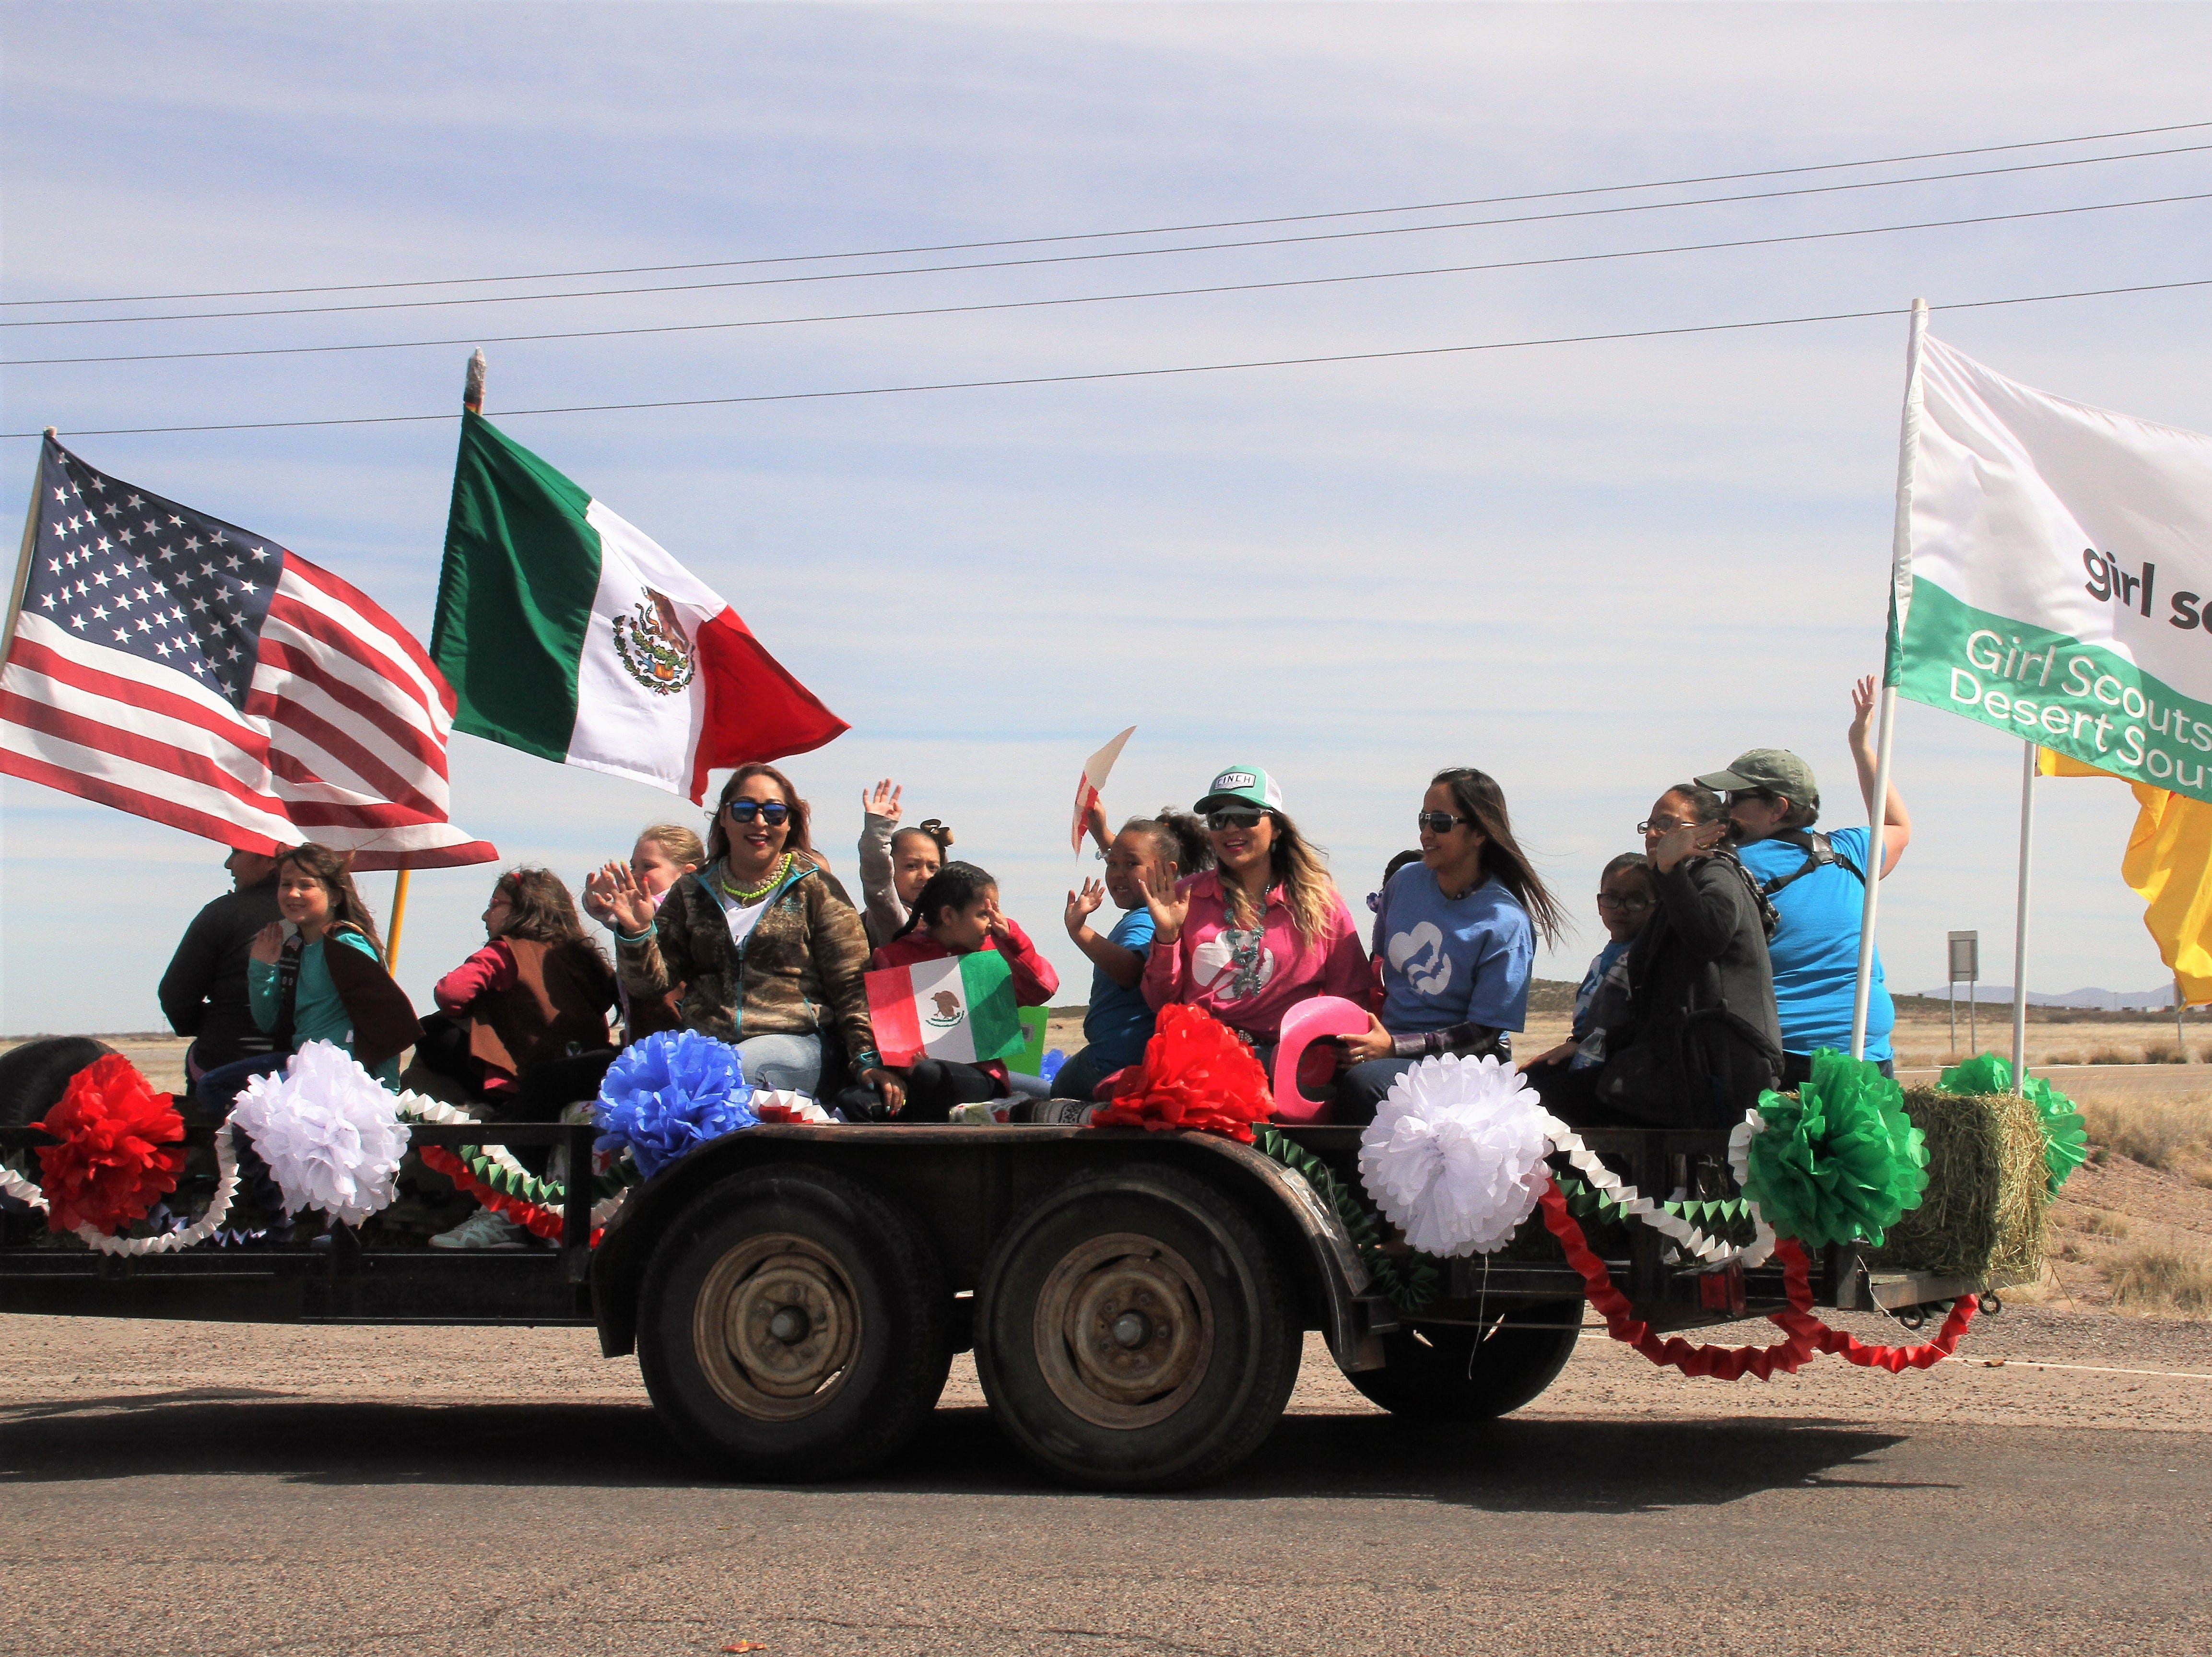 Columbus and Deming Girl Scouts participated as the only float in the Cabalgata.